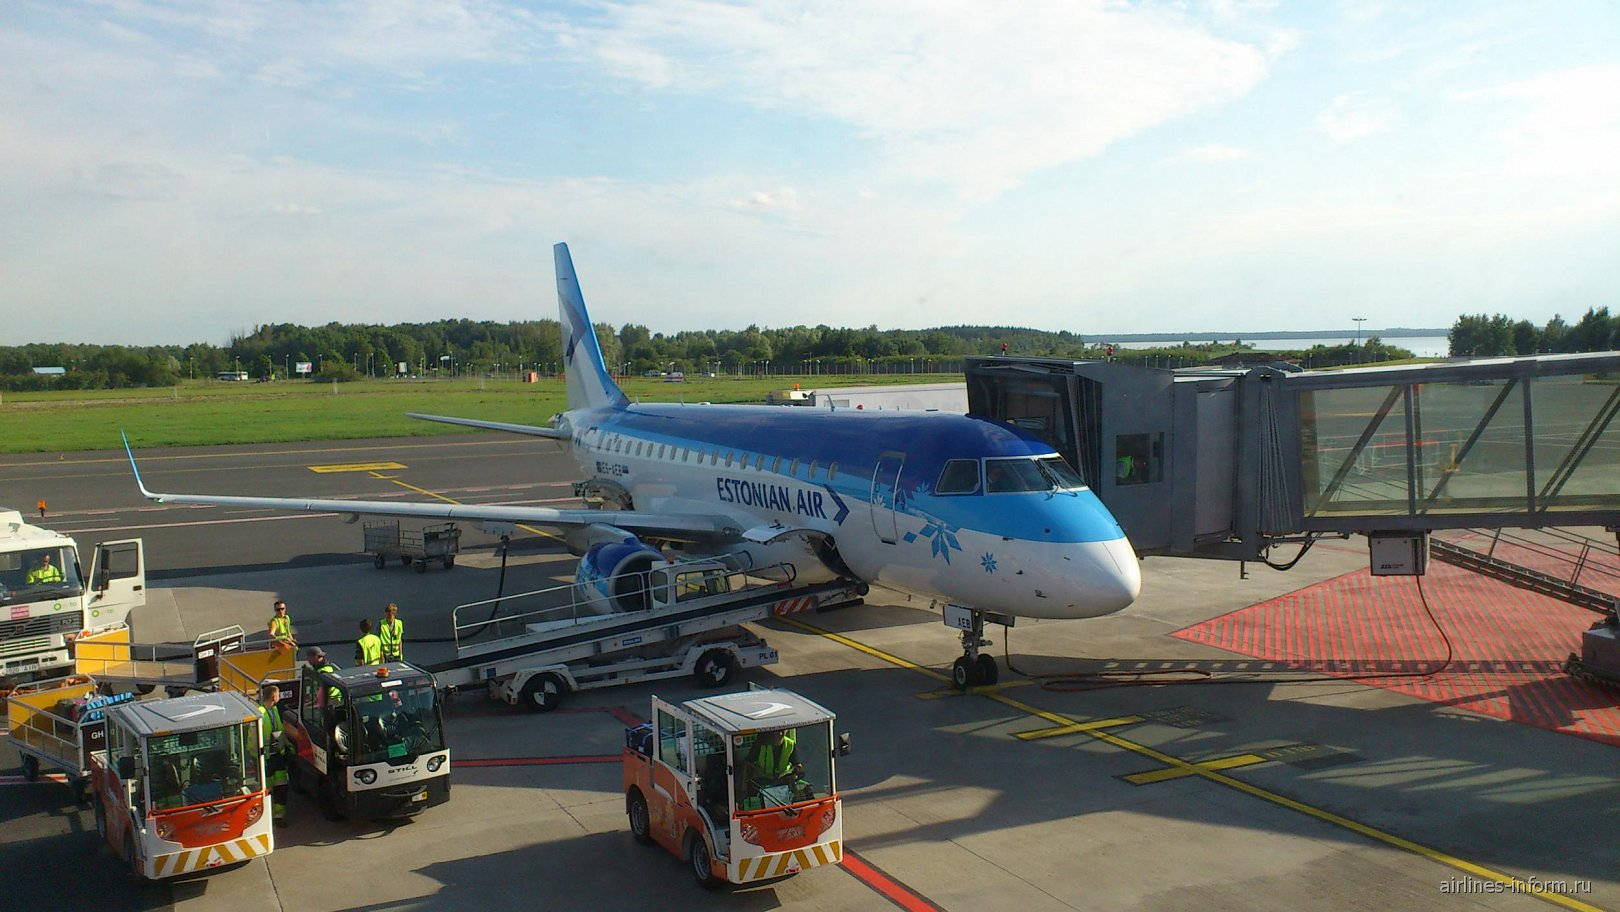 Самолет Embraer 170 авиакомпании Estonian Air